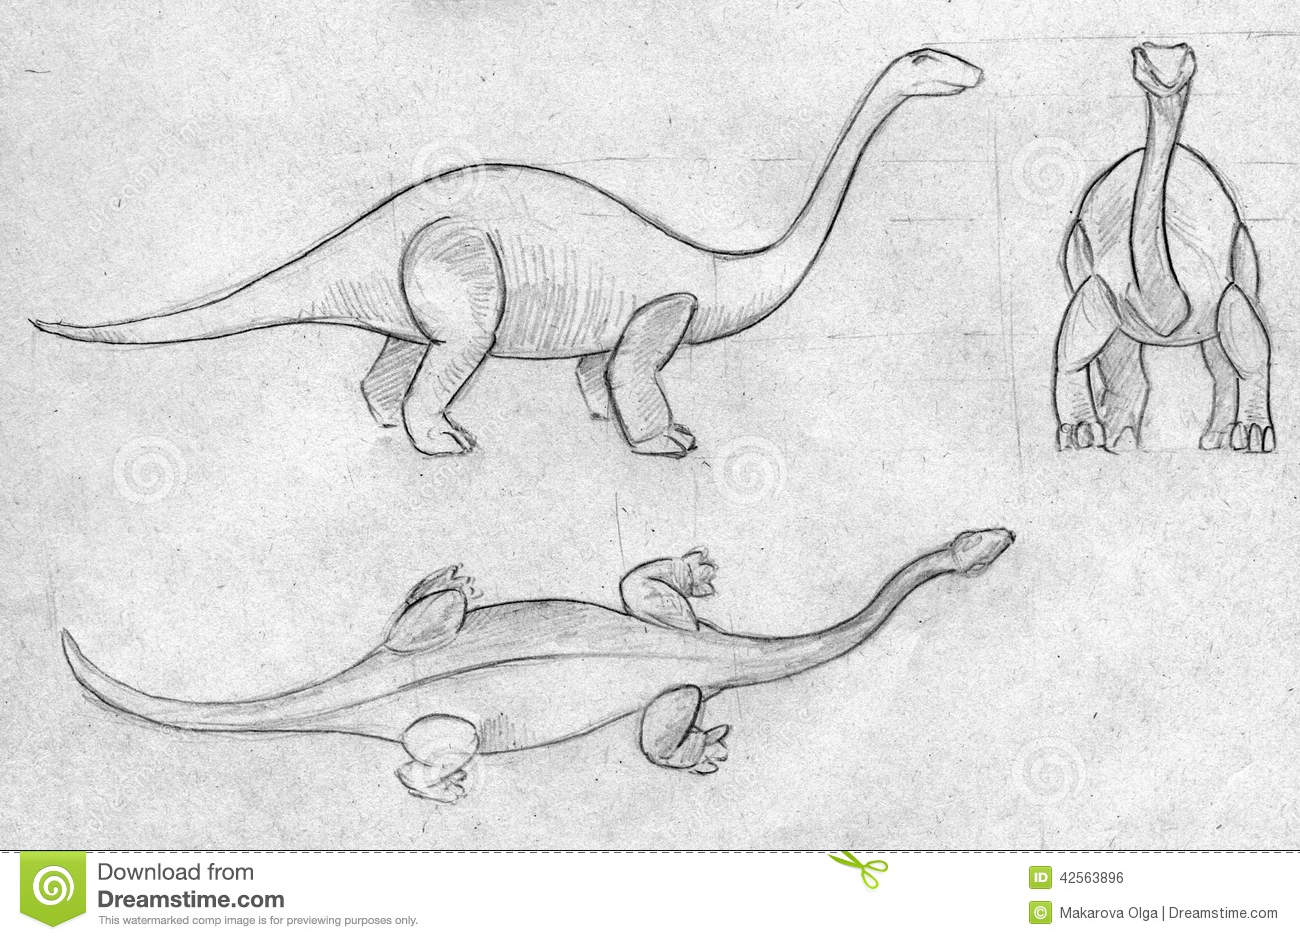 Uncategorized Sketches Of Dinosaurs three sketches dinosaur hand drawn pencil diplodocus huge long neck top side front views 42563896 jpg